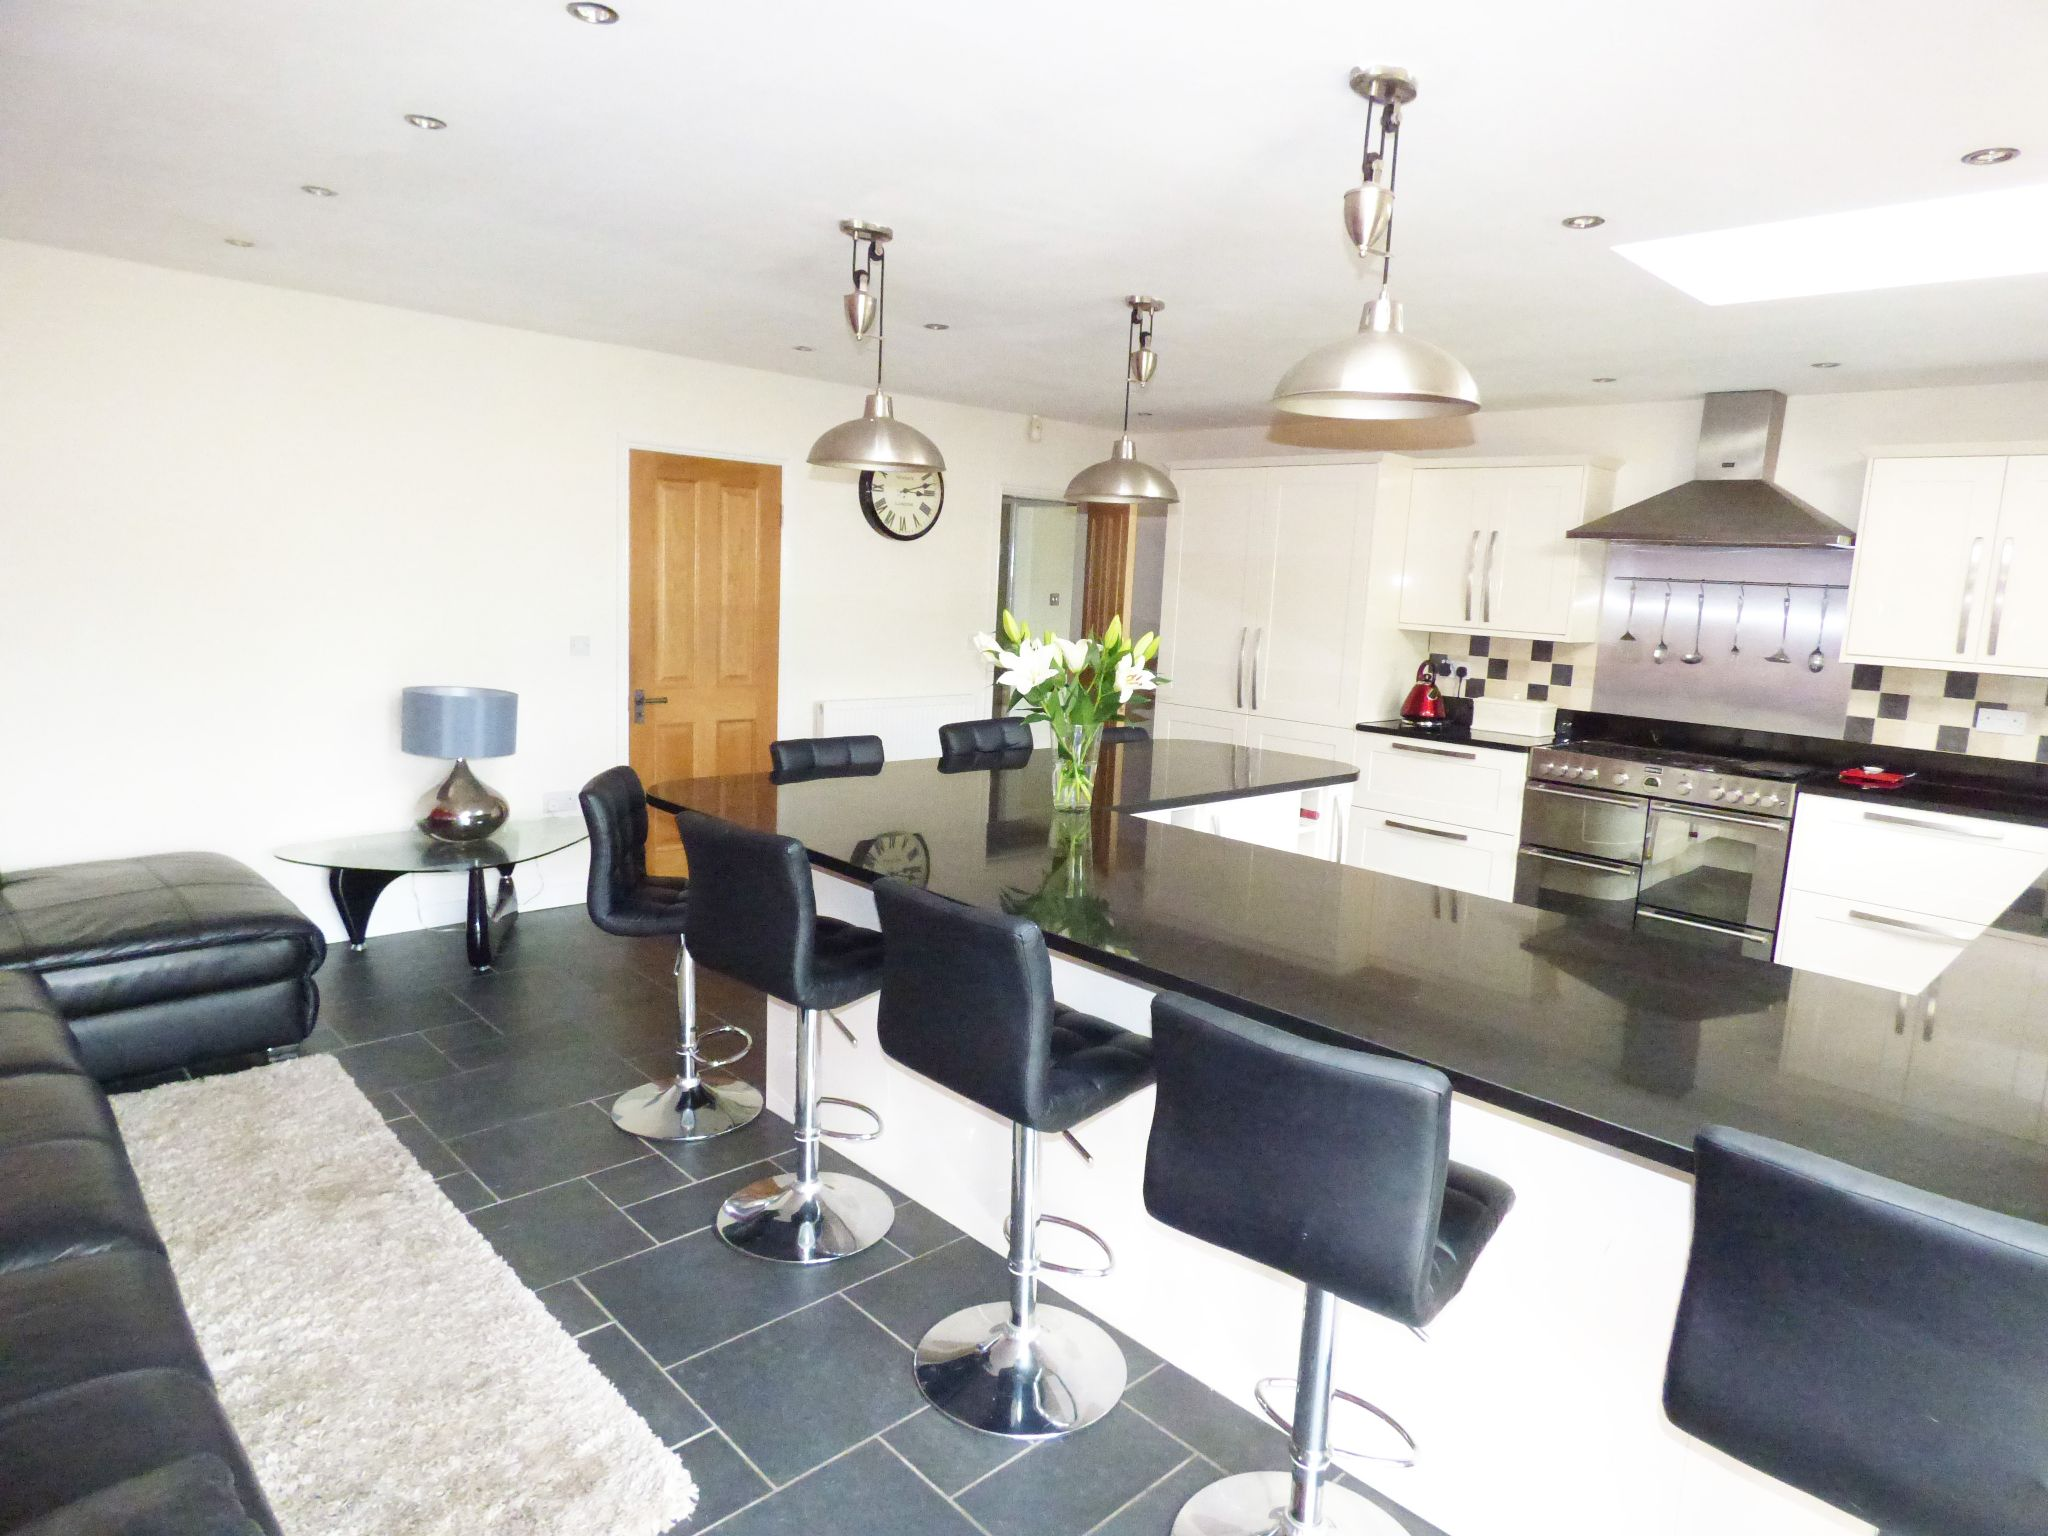 5 Bedroom Detached House For Sale - Photograph 3